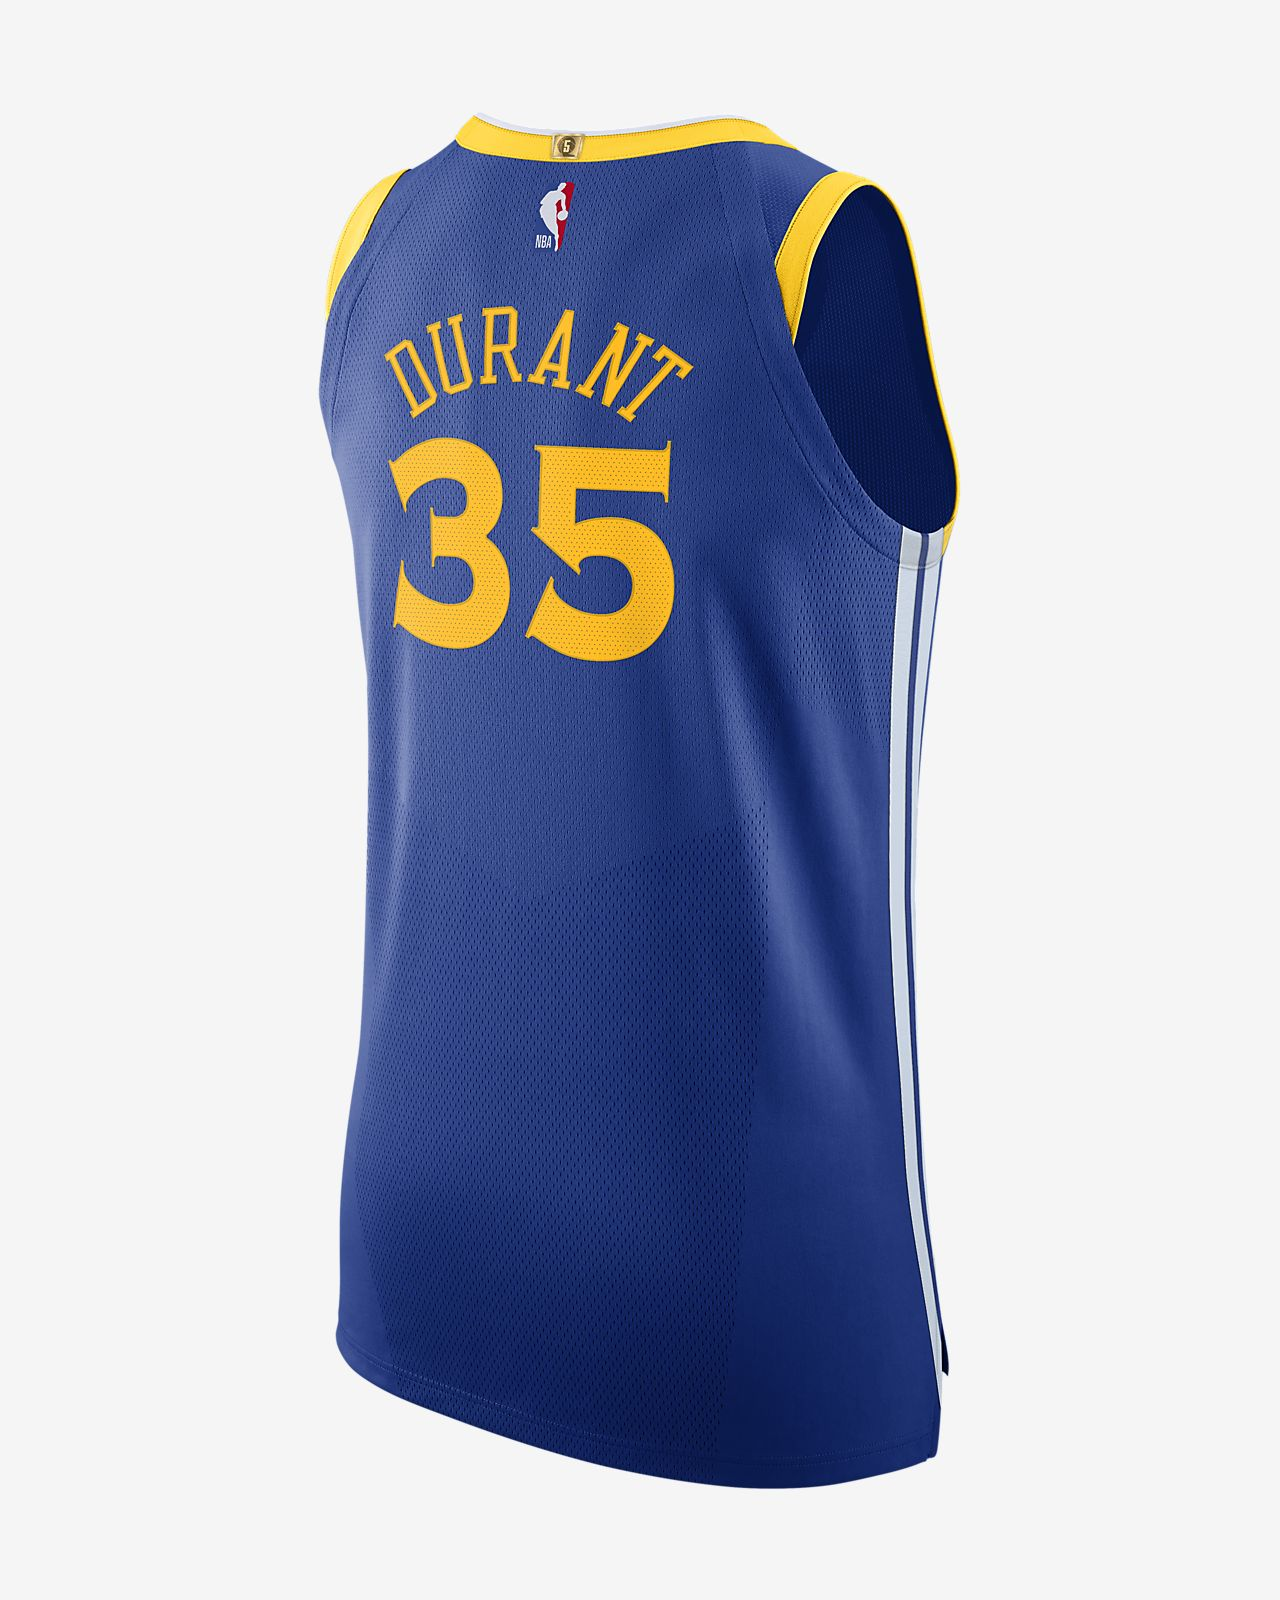 8e562edabdb6 Men s Nike NBA Connected Jersey. Kevin Durant Icon Edition Authentic (Golden  State Warriors)